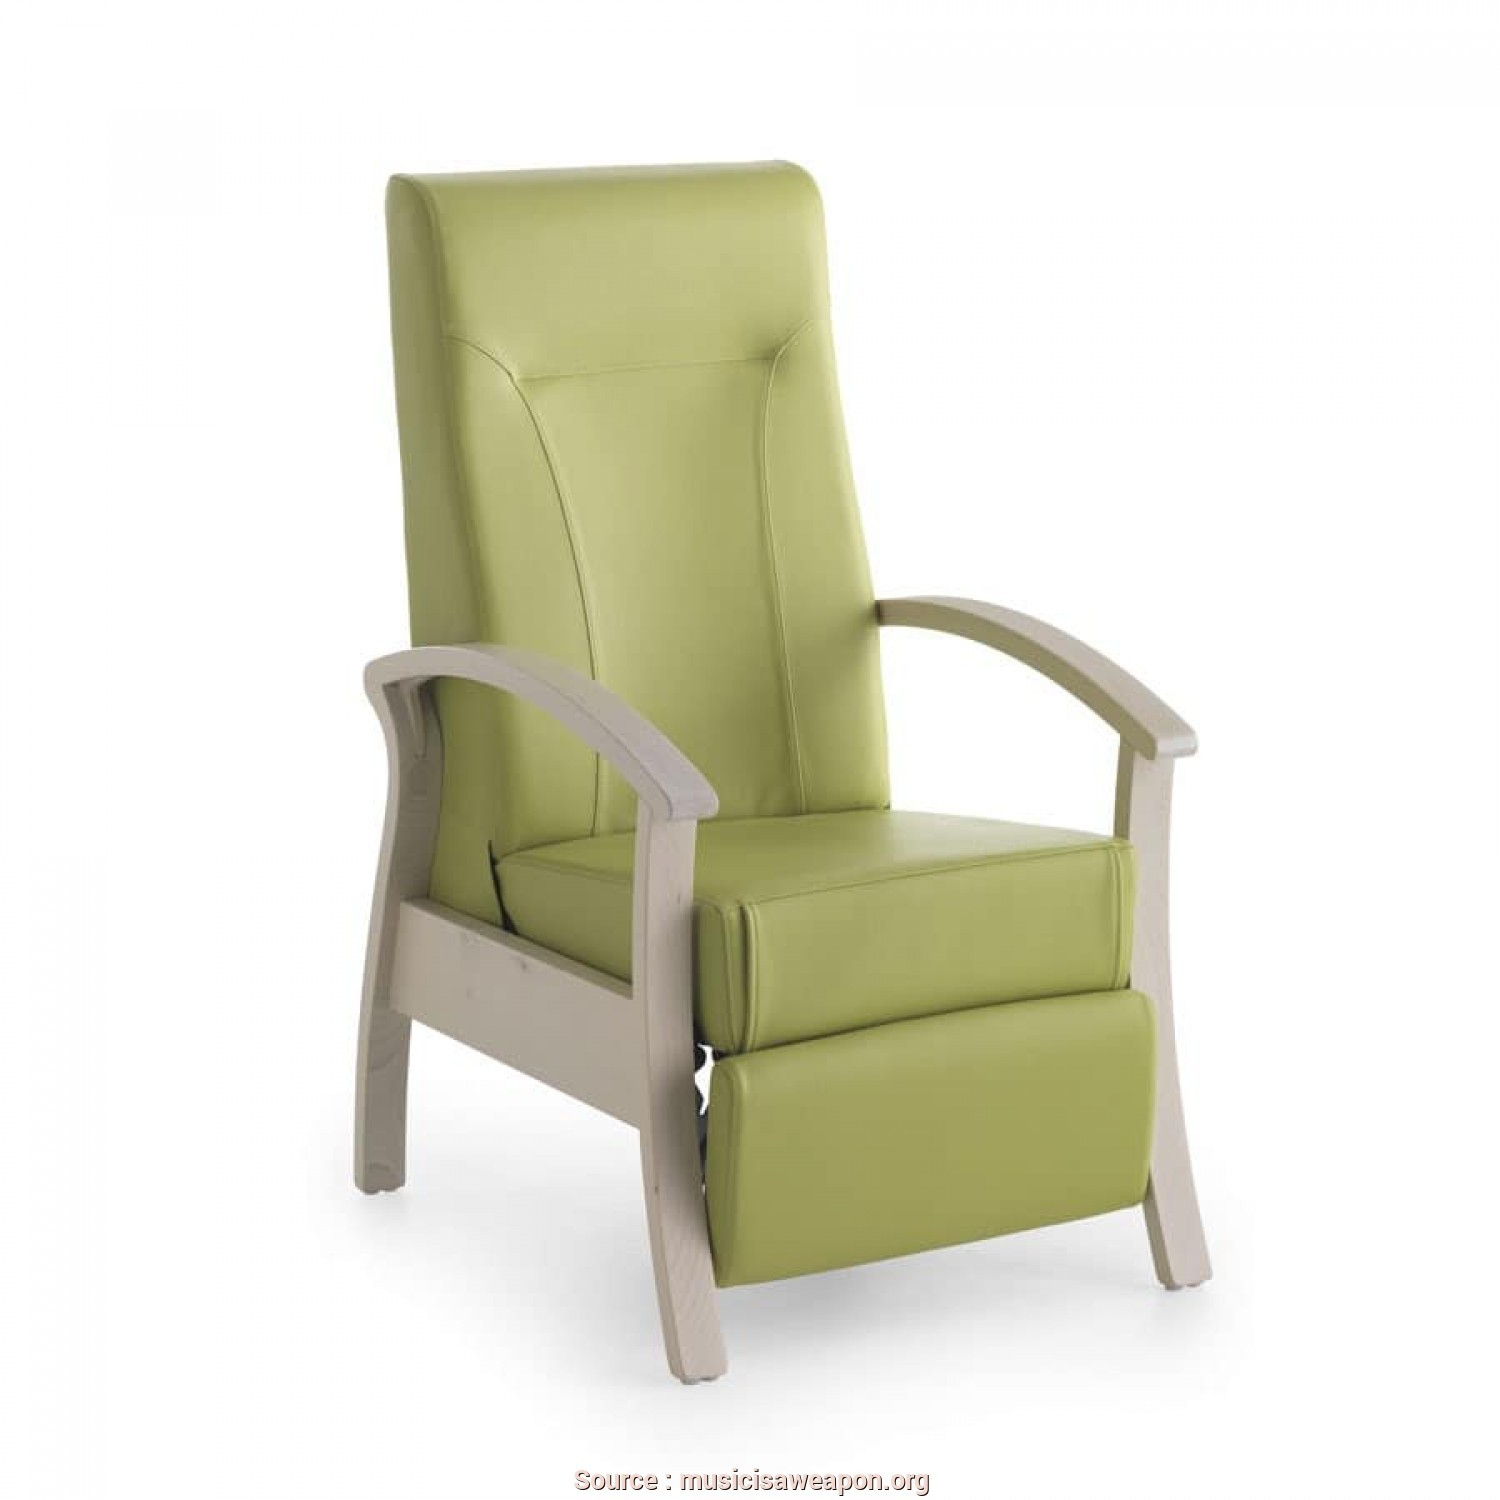 50 Armchairs For Elderly Guide How To Choose The Best Ideas On Foter